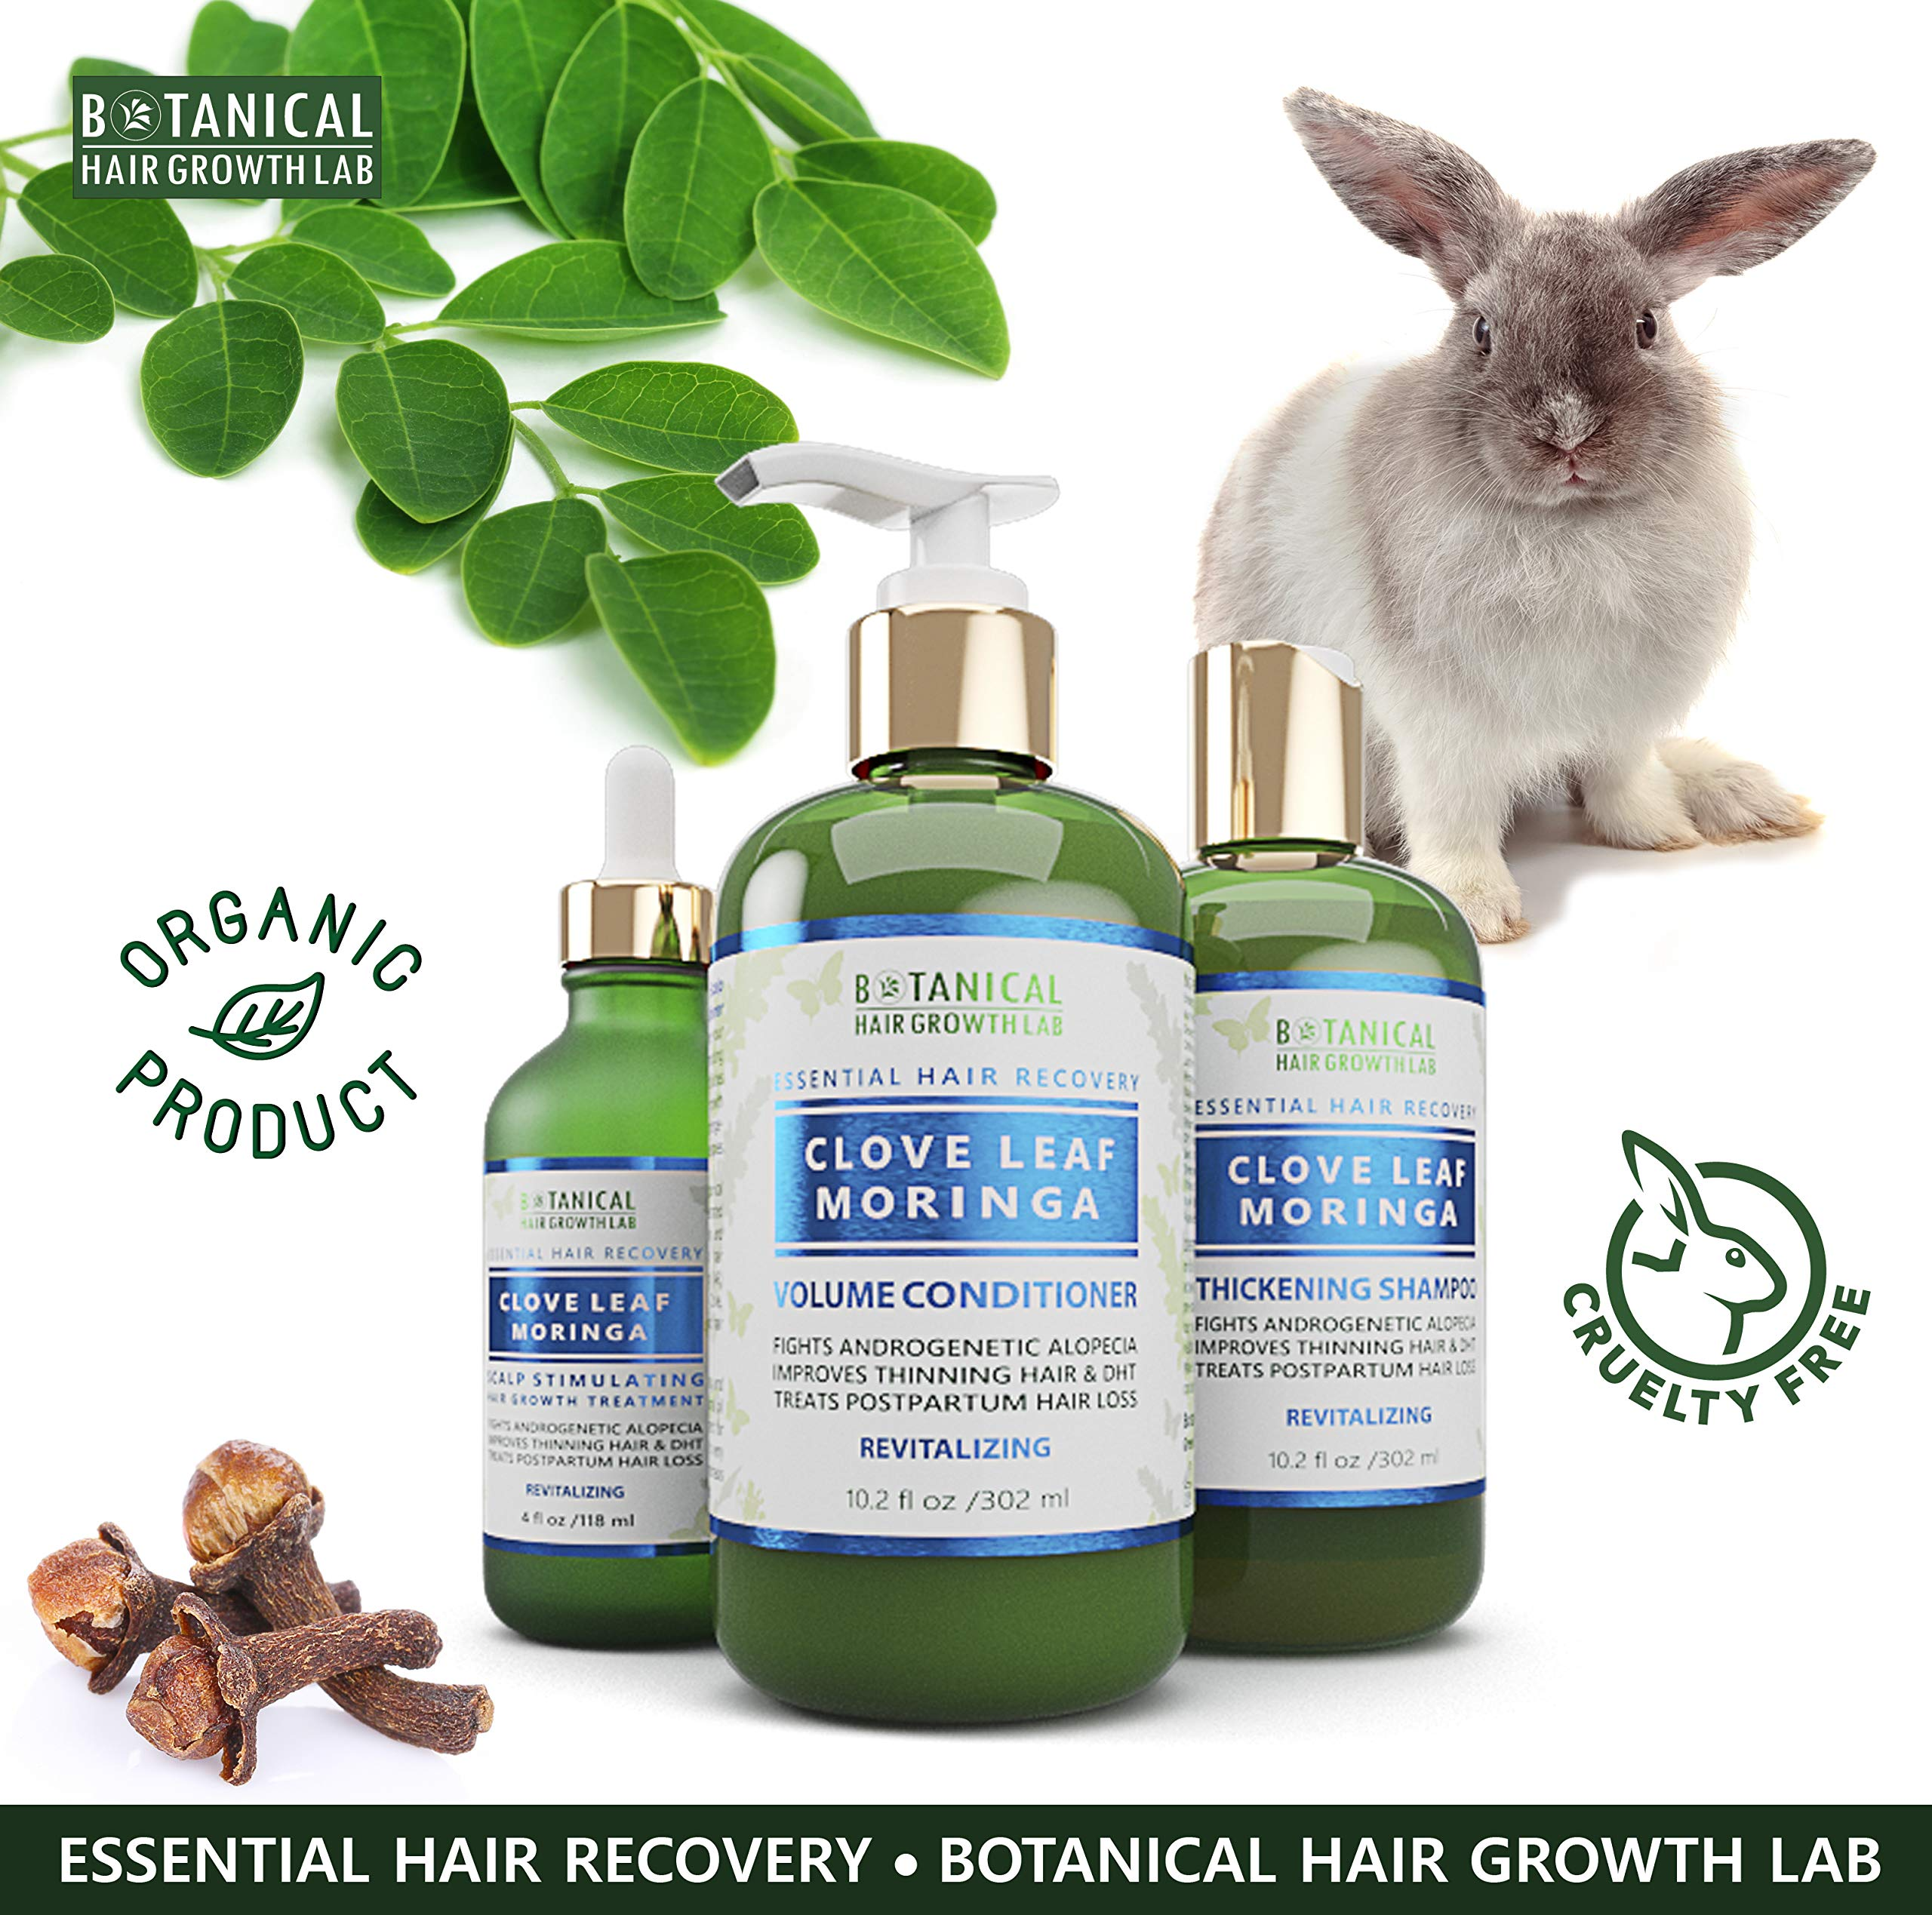 Botanical Hair Growth Lab Biotin Conditioner - Clove Leaf Moringa Formula - Anti Hair Loss Complex - DHT Blockers, Sulfate Free, Natural Ingredients for Men & Women by BOTANICAL HAIR GROWTH LAB (Image #8)